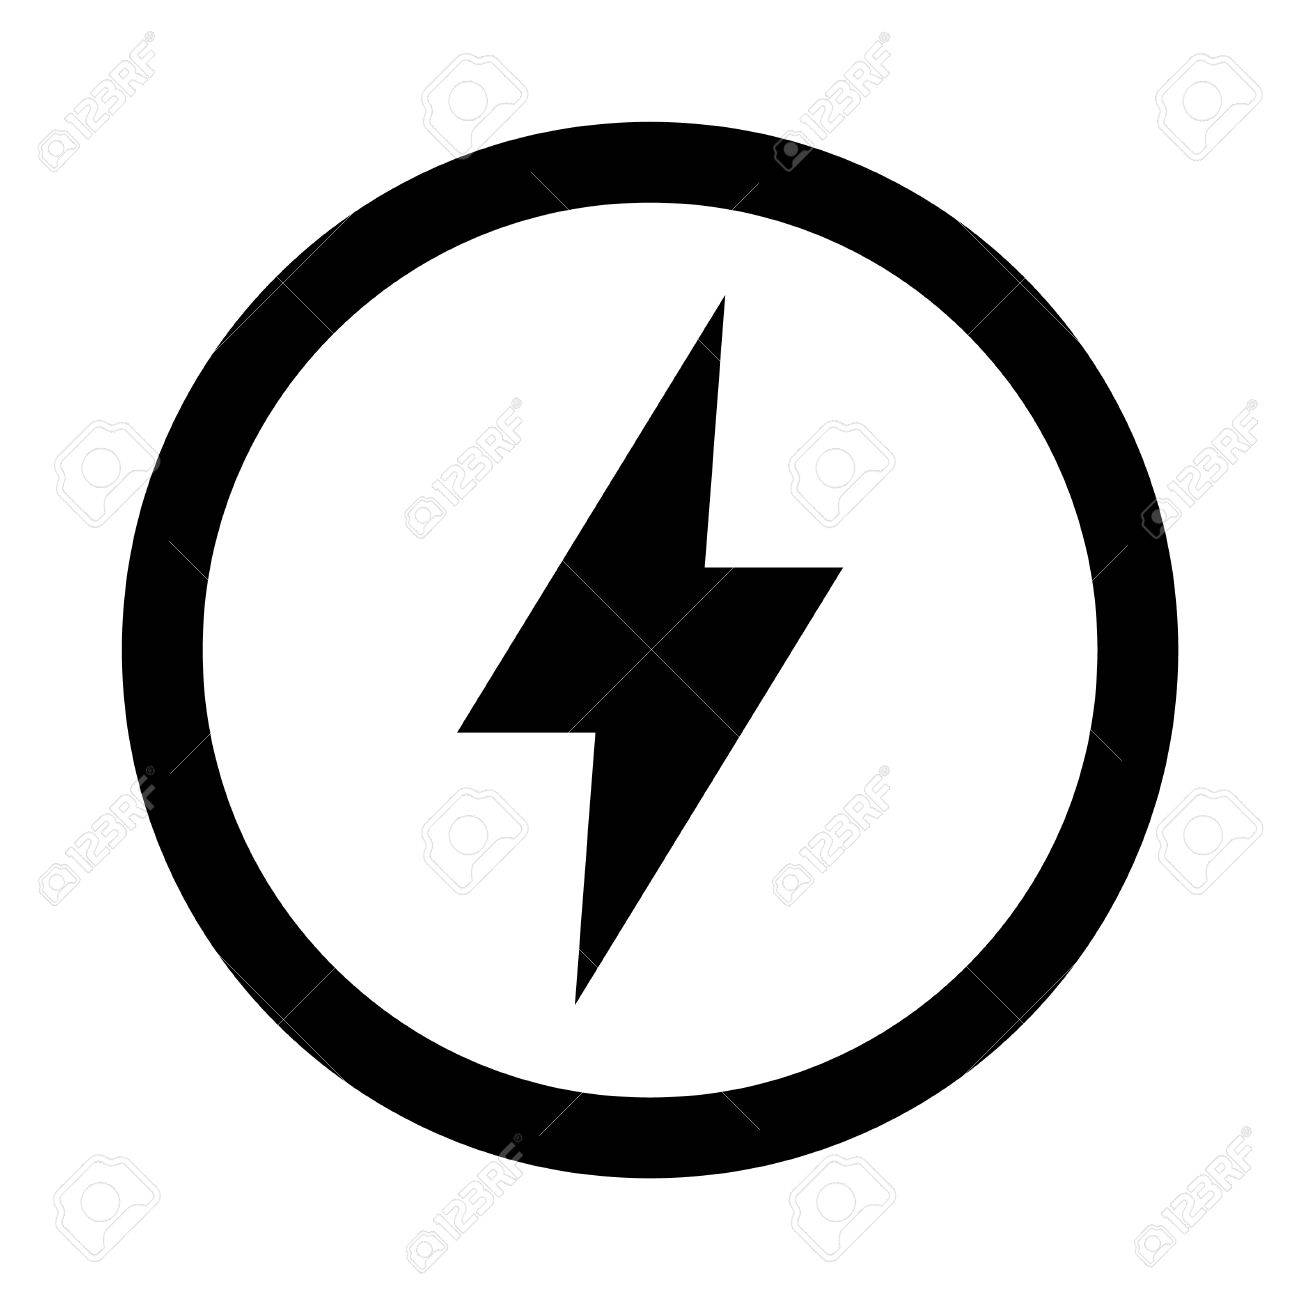 lightning bolt vector icon royalty free cliparts vectors and stock rh 123rf com lightning bolt clipart vector vector art lightning bolt